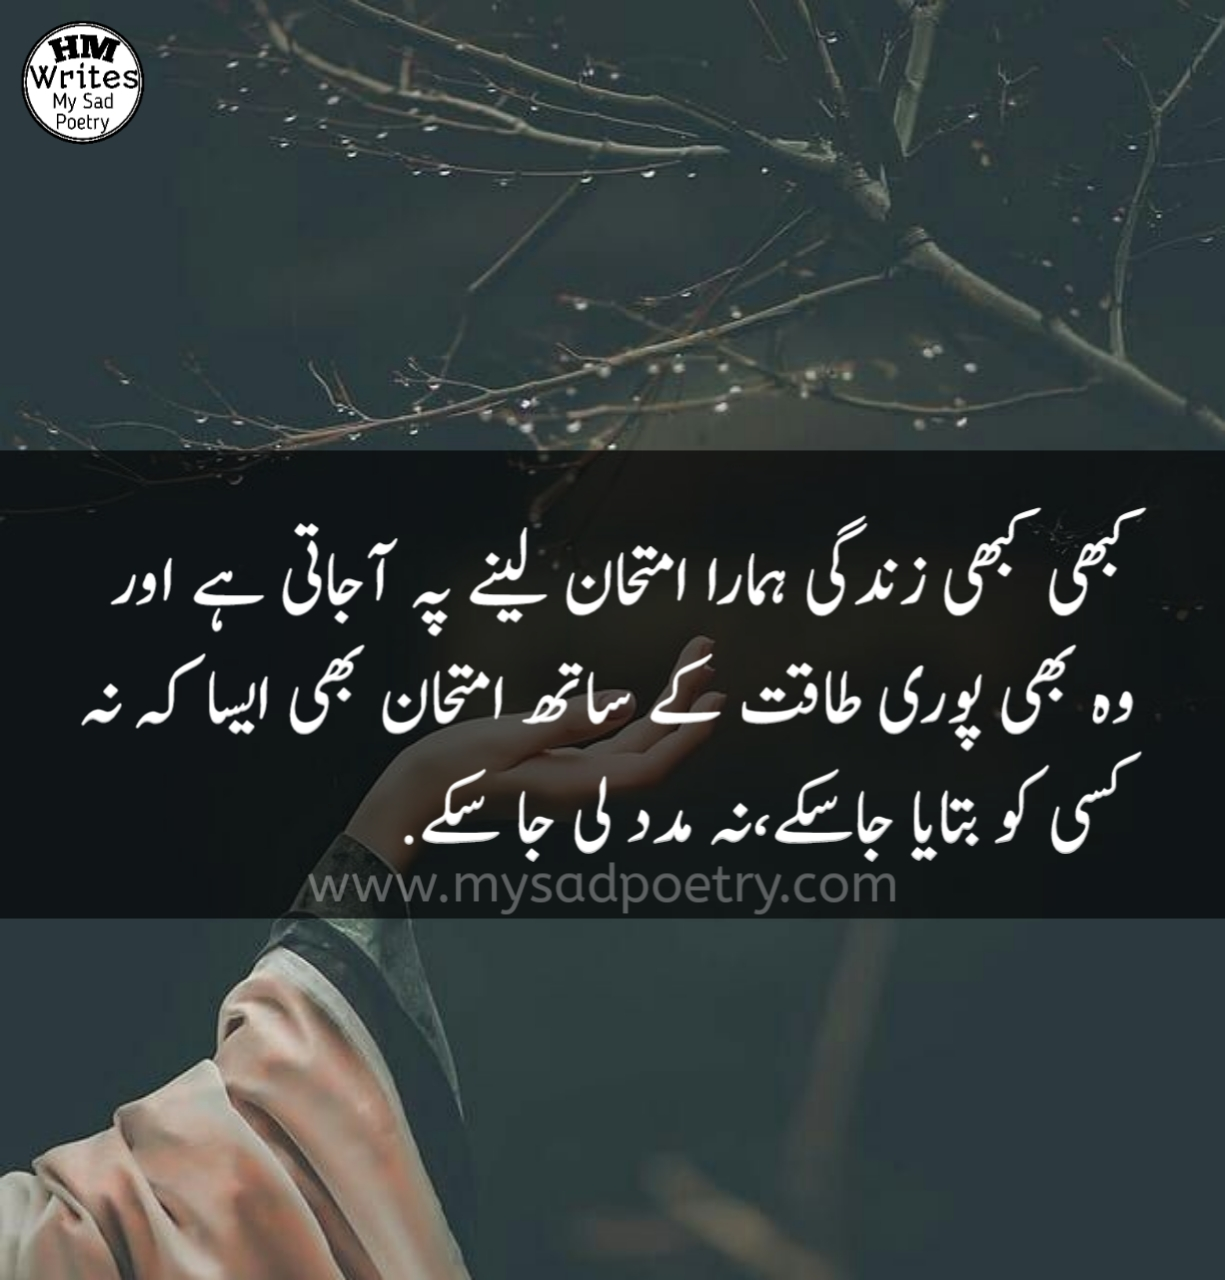 35 Wonderful Collection Of Best Sad Quotes: Best Urdu Life Quotes And SMS - My Sad